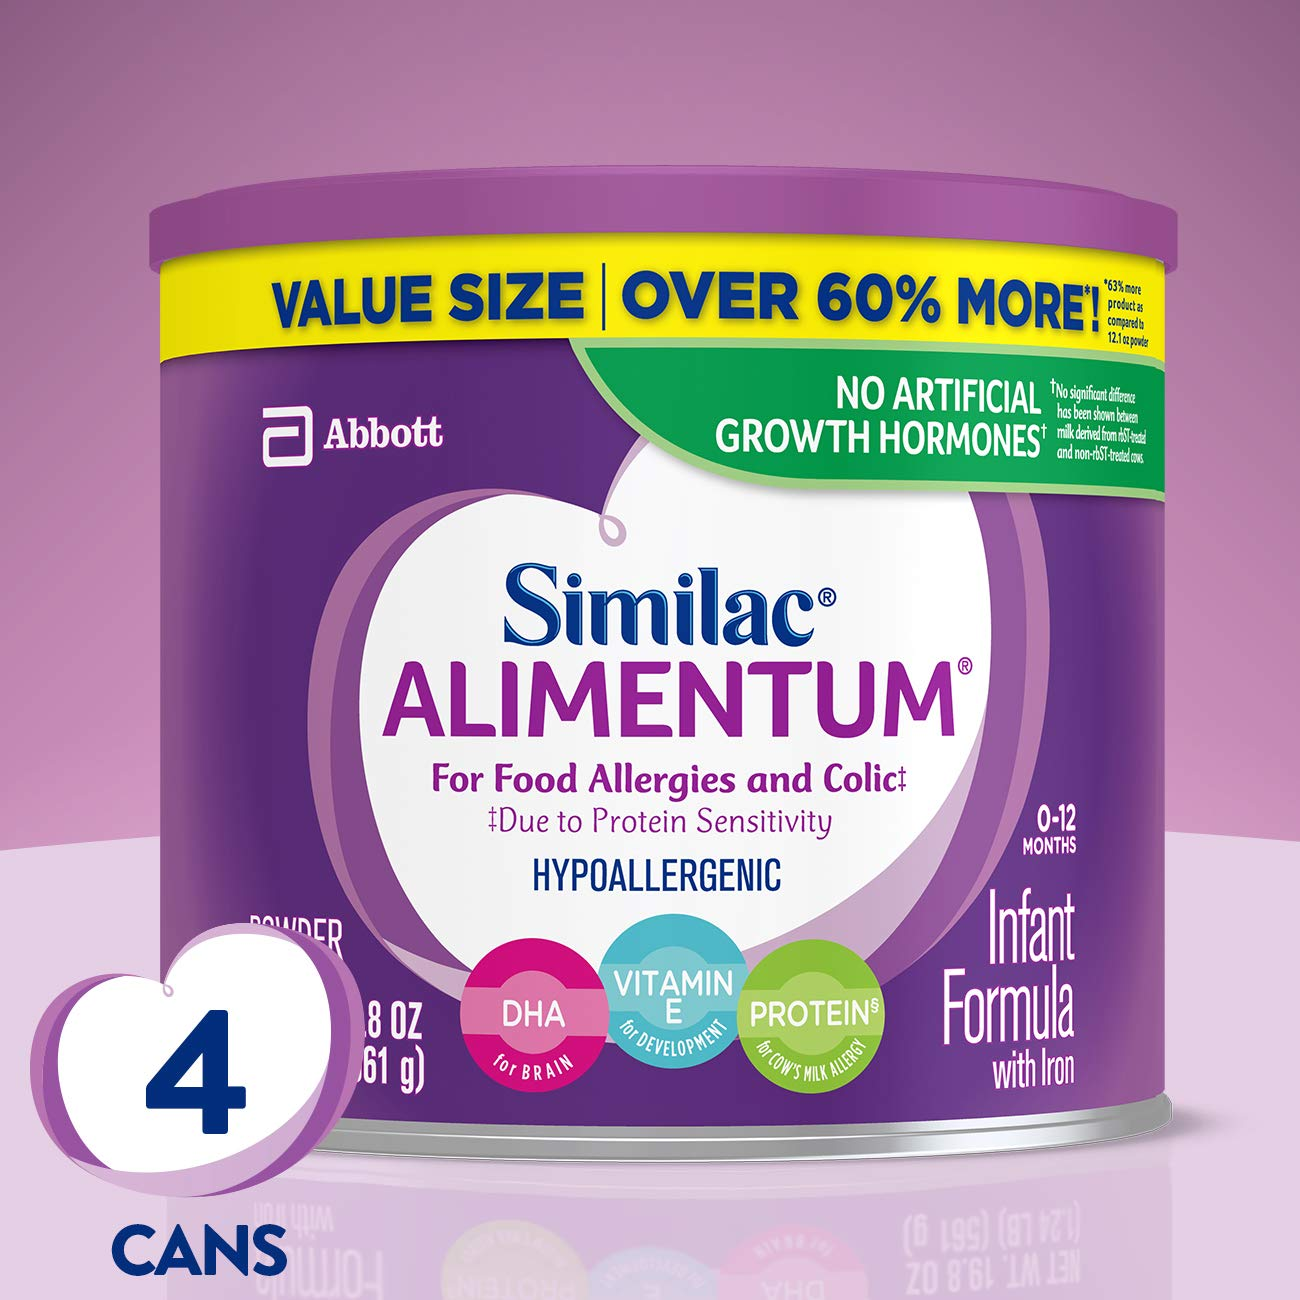 Similac Alimentum Hypoallergenic for Food Allergies and Colic Infant Formula Powder, 19.8 Oz (Pack of 4)